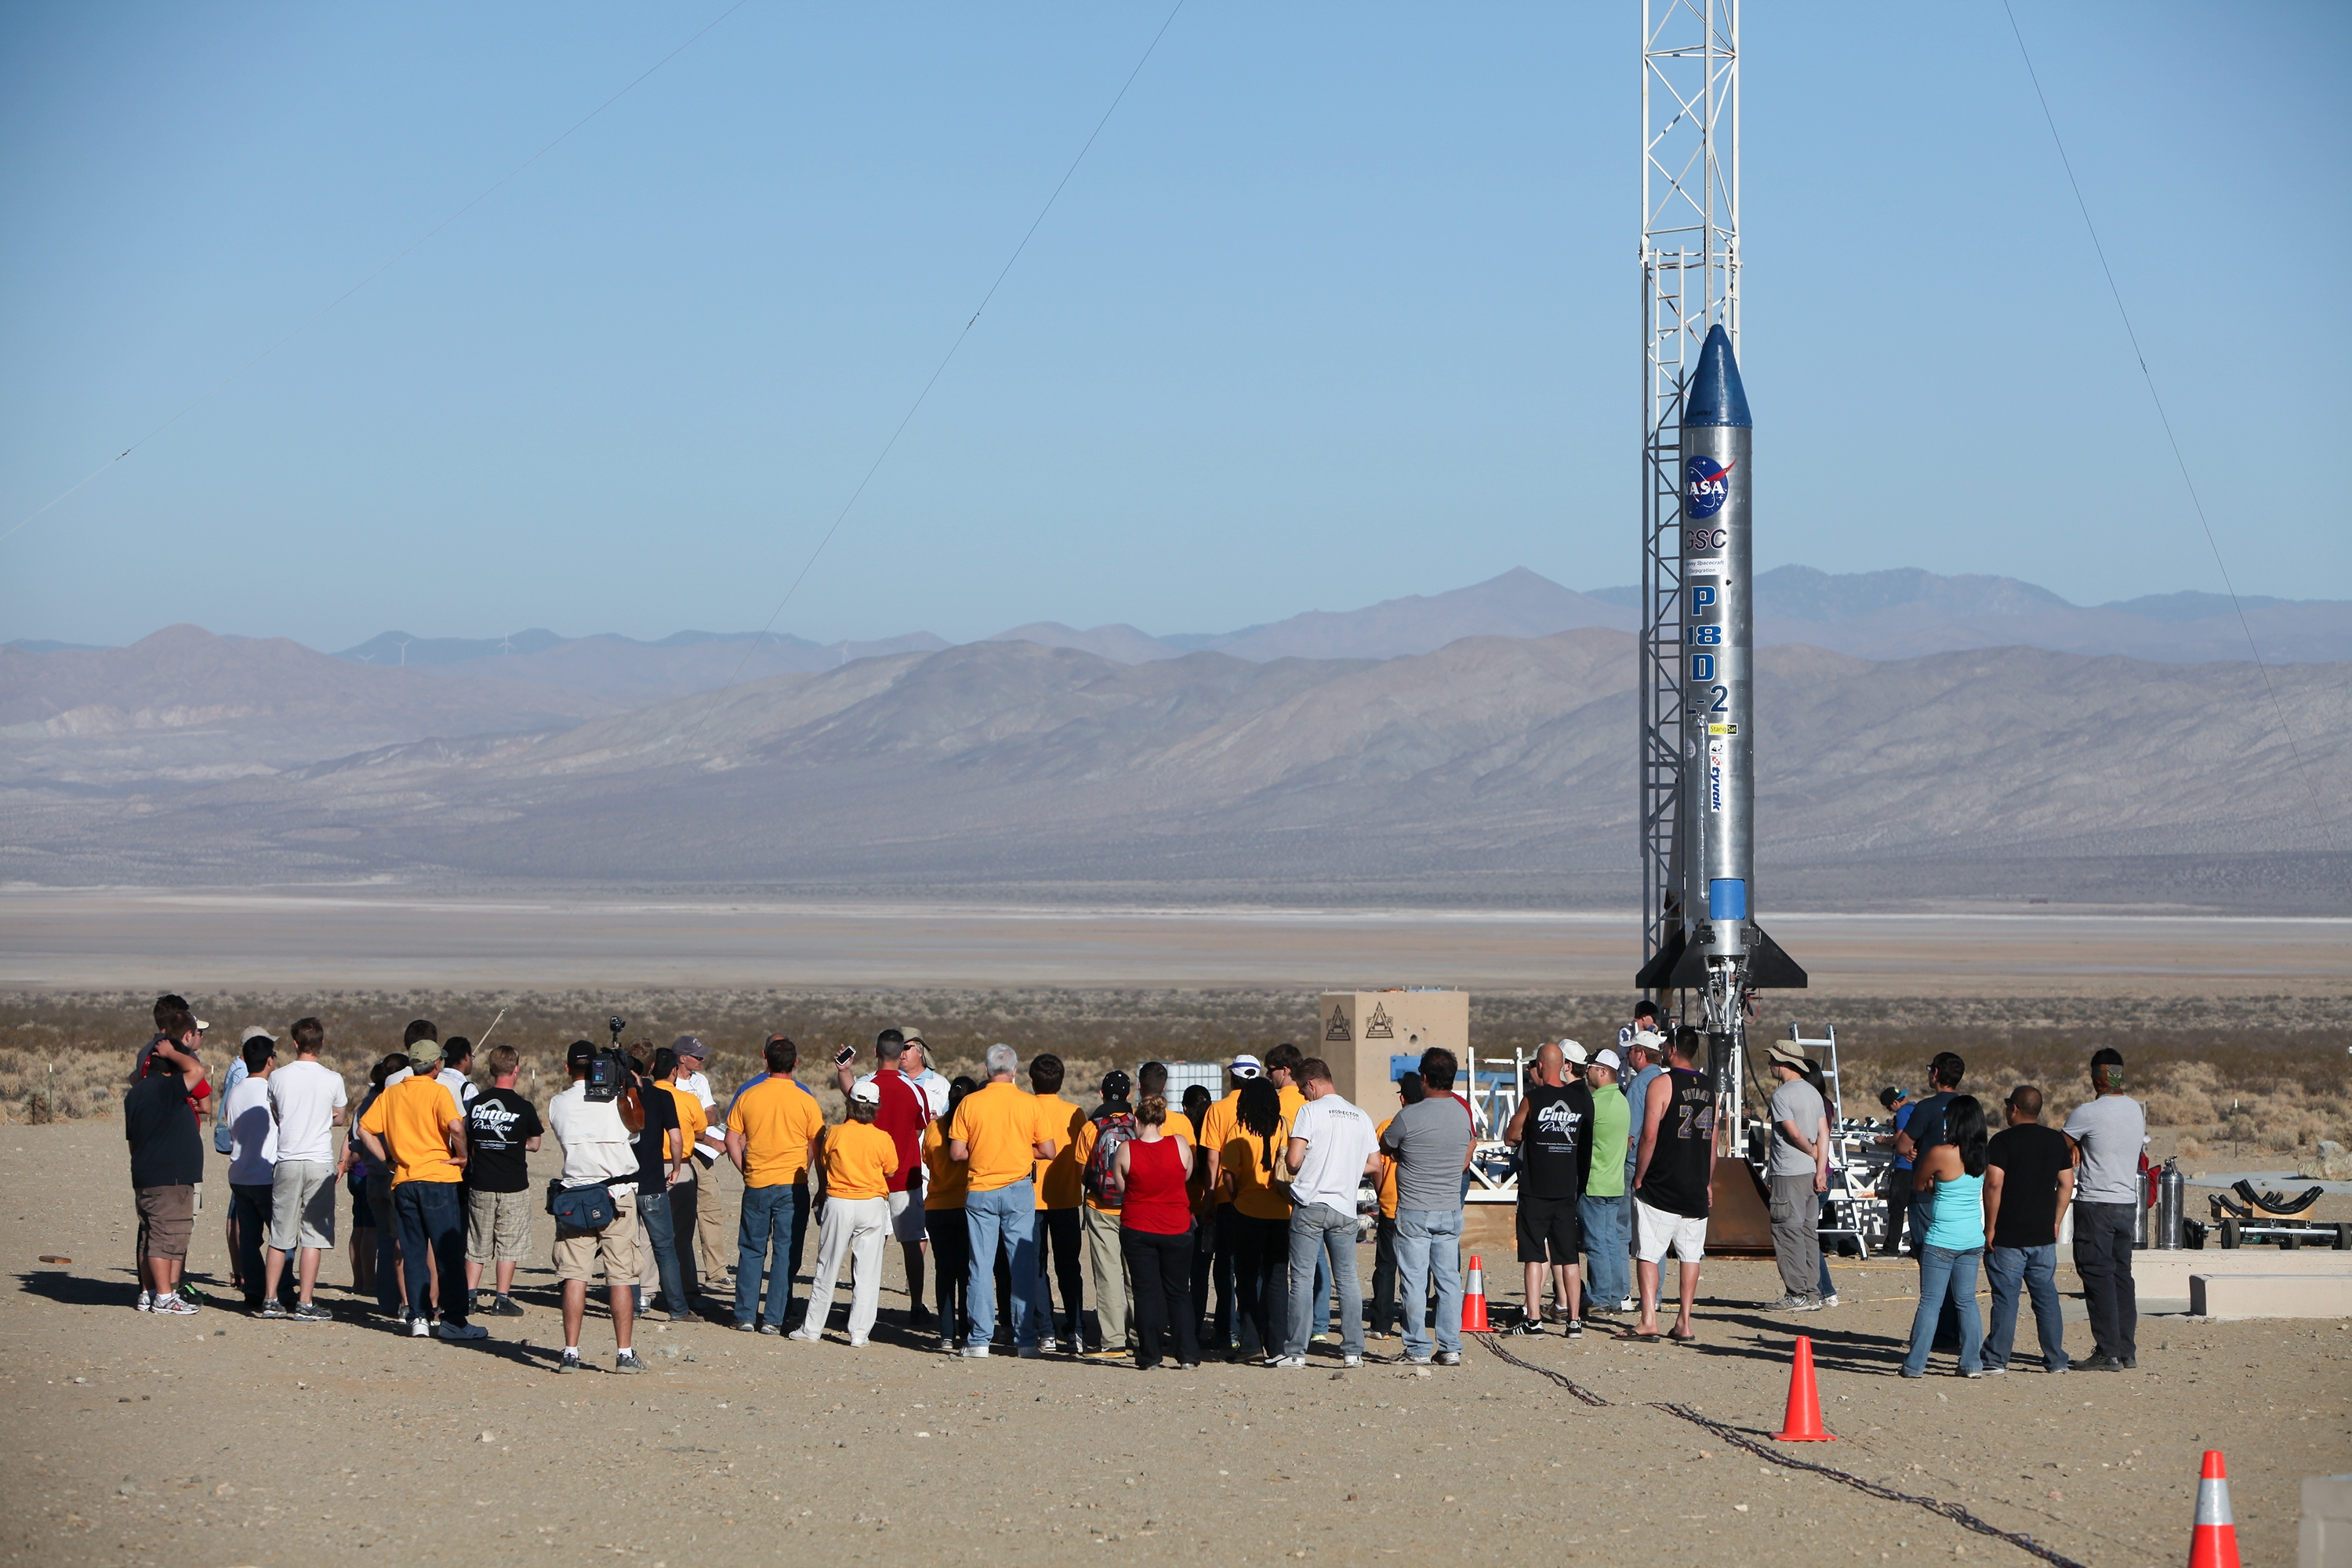 Image above: Students and engineers participate in a prelaunch briefing before liftoff of the Prospector 18 rocket. Photo credit: NASA/Dimitri Gerondidakis